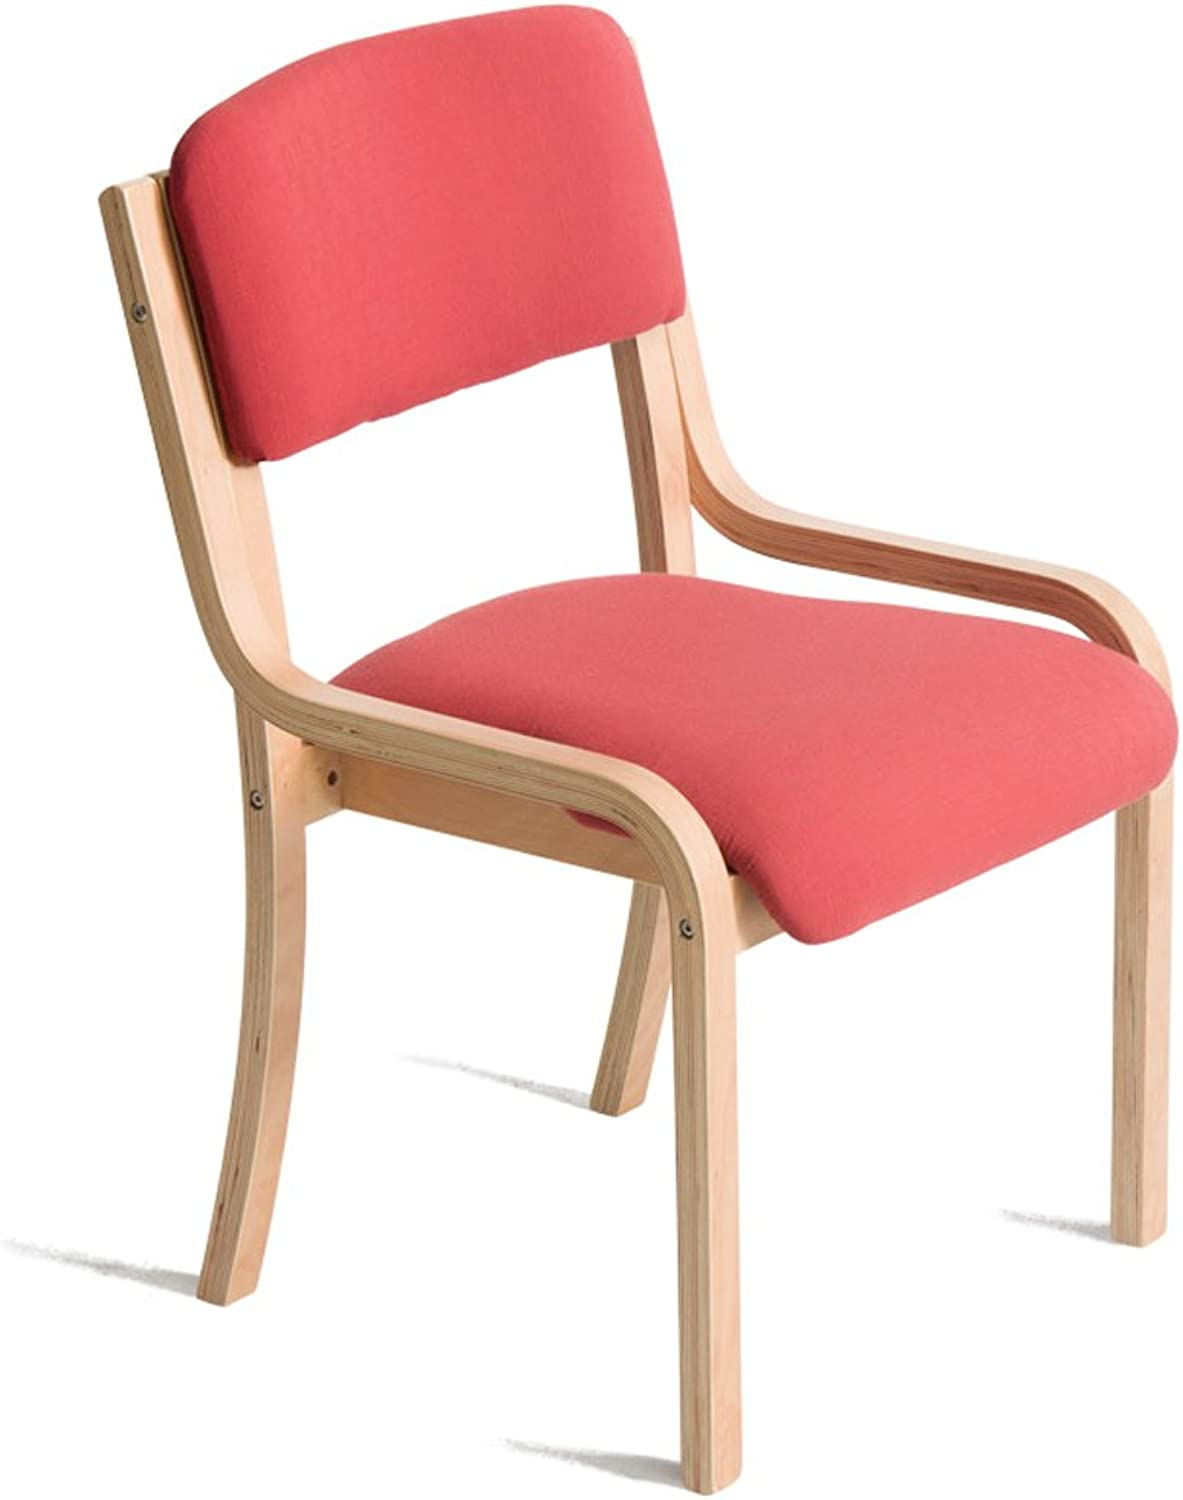 Chairs Dining Chairs Simple Chairs Leisure Chairs Solid Wood Fabric Dining Table Chairs Washable Sedentary Comfortable (color   Red)